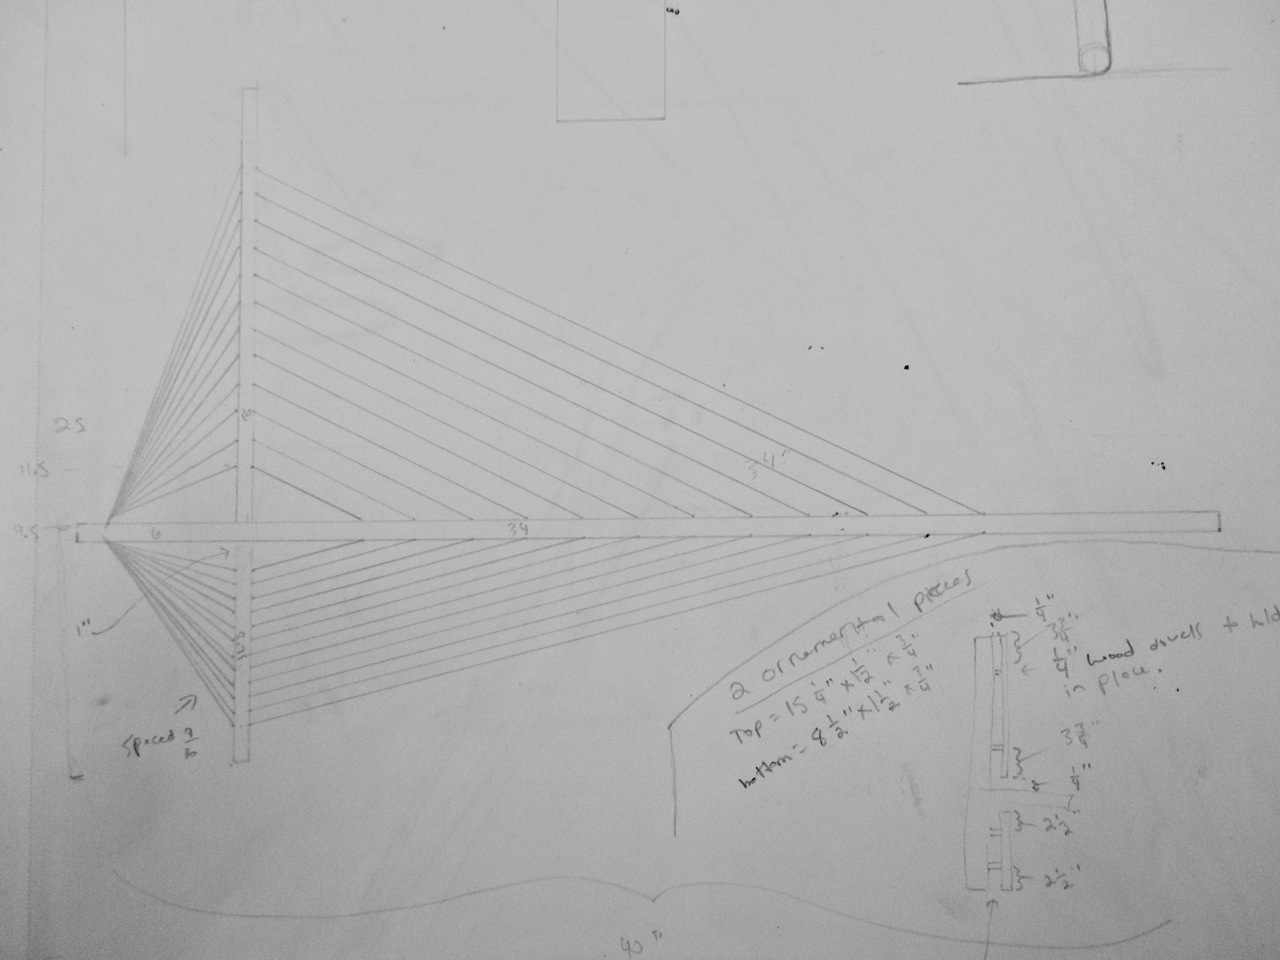 Original sketch for final version of Suspension Shelf